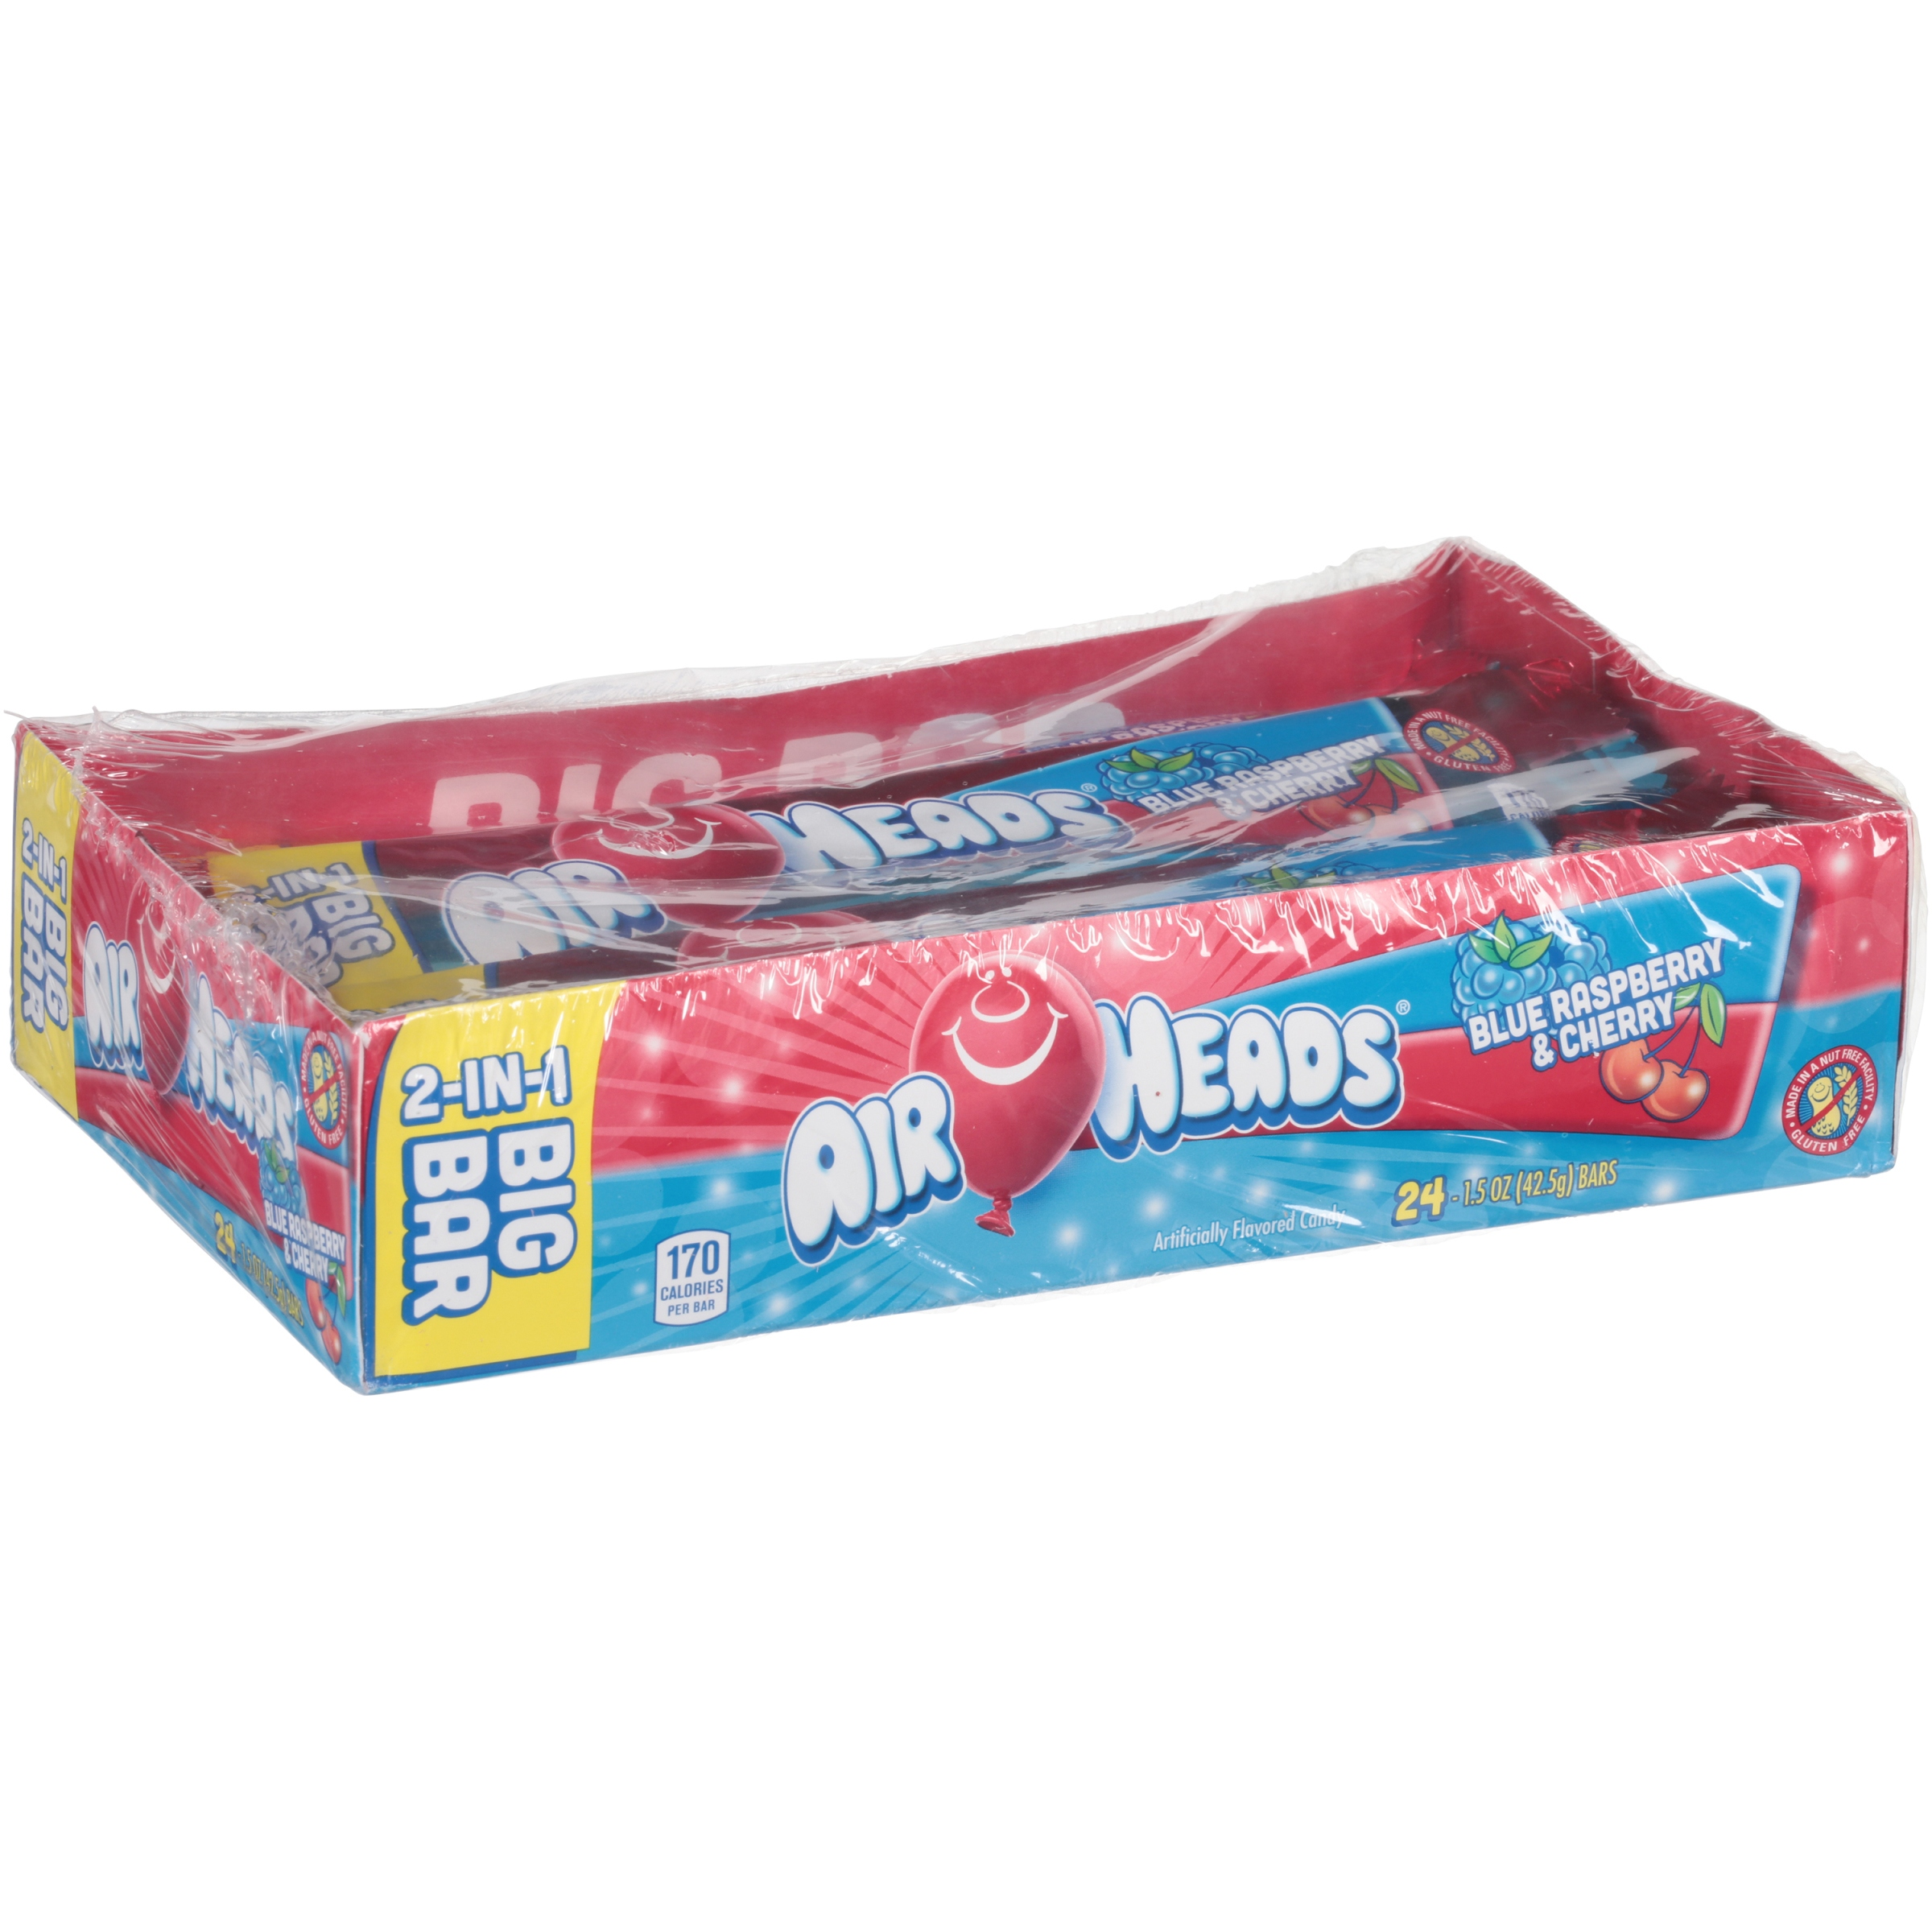 Airheads, Blue Raspberry & Cherry Big Bars, 24 Ct